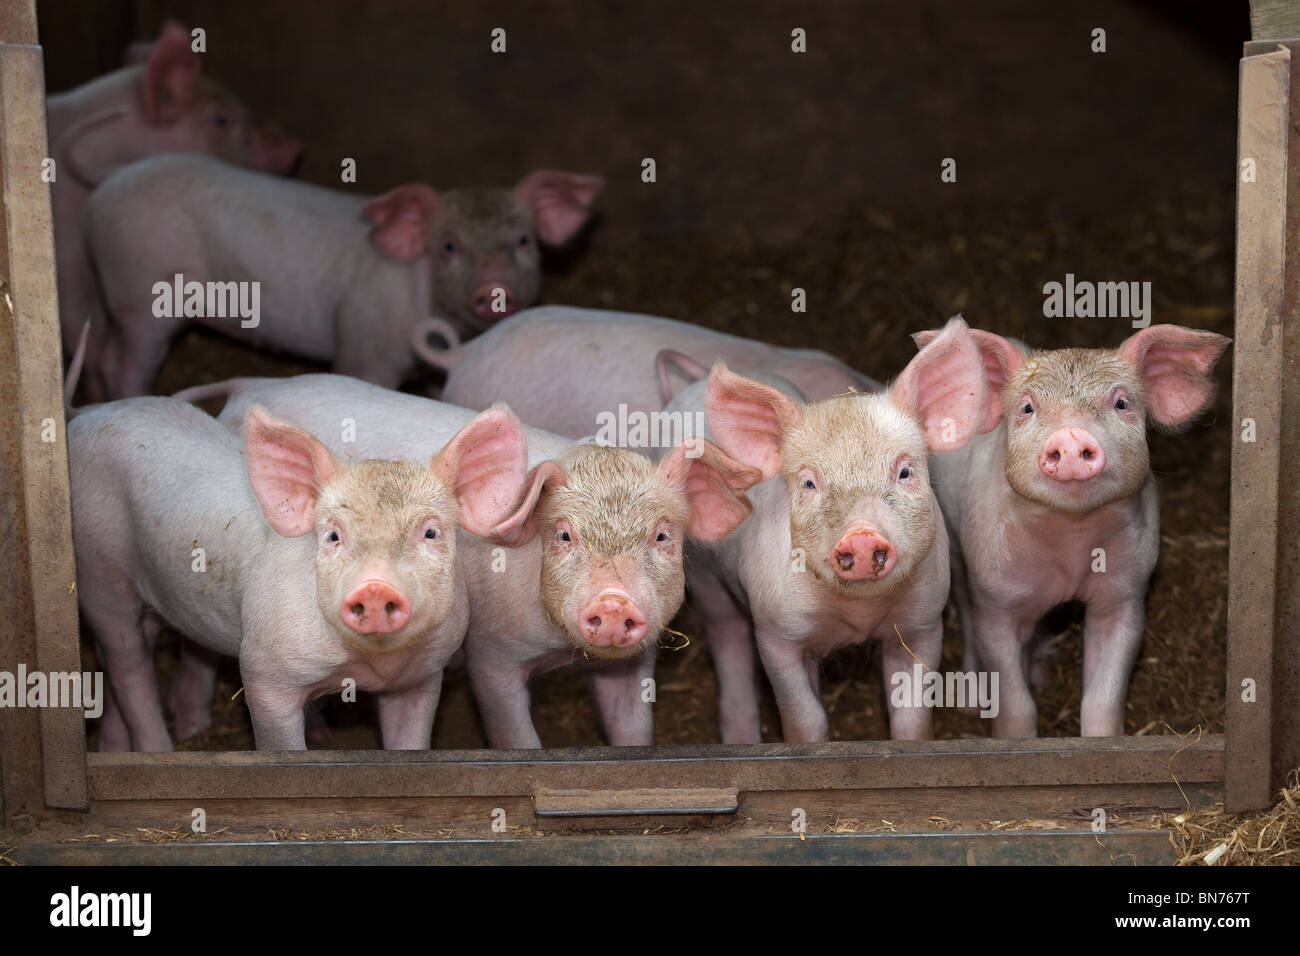 Free range Piglets at 4 weeks old in a row - Stock Image